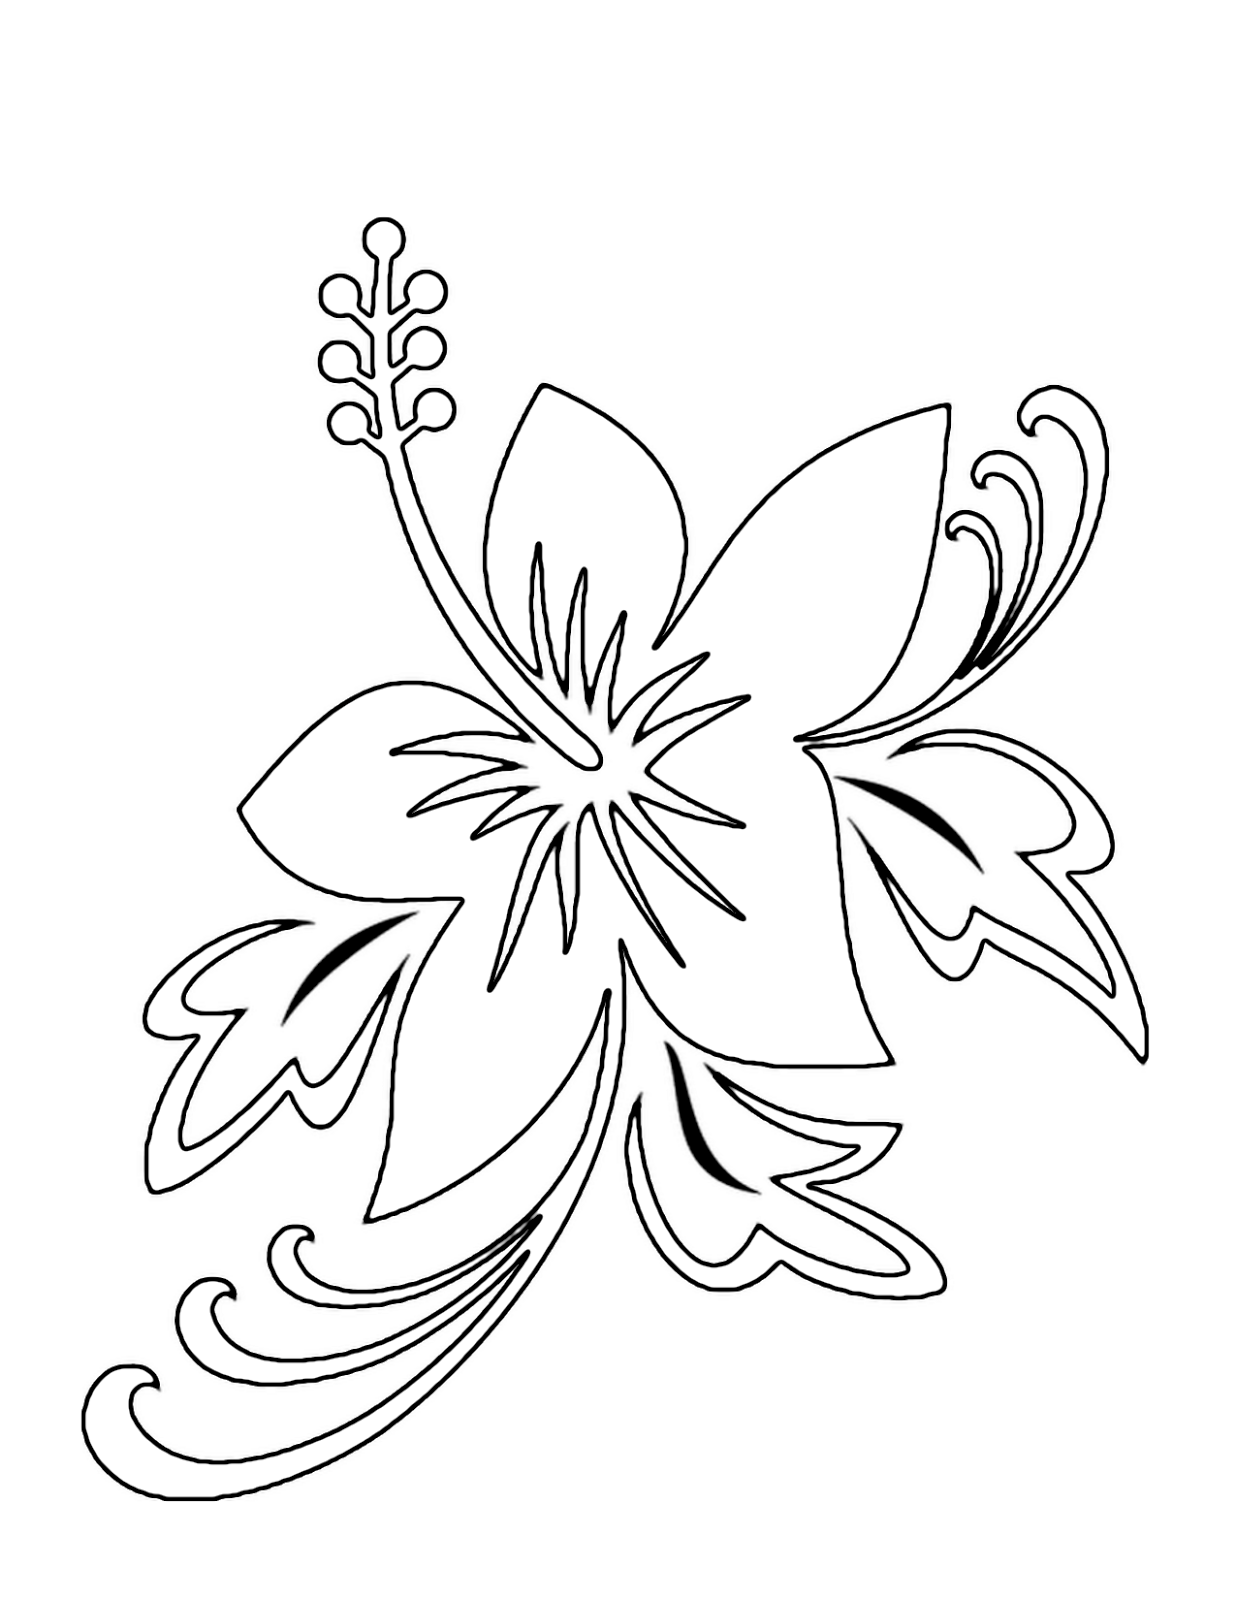 1236x1600 Hawaiian Flower Coloring Pages